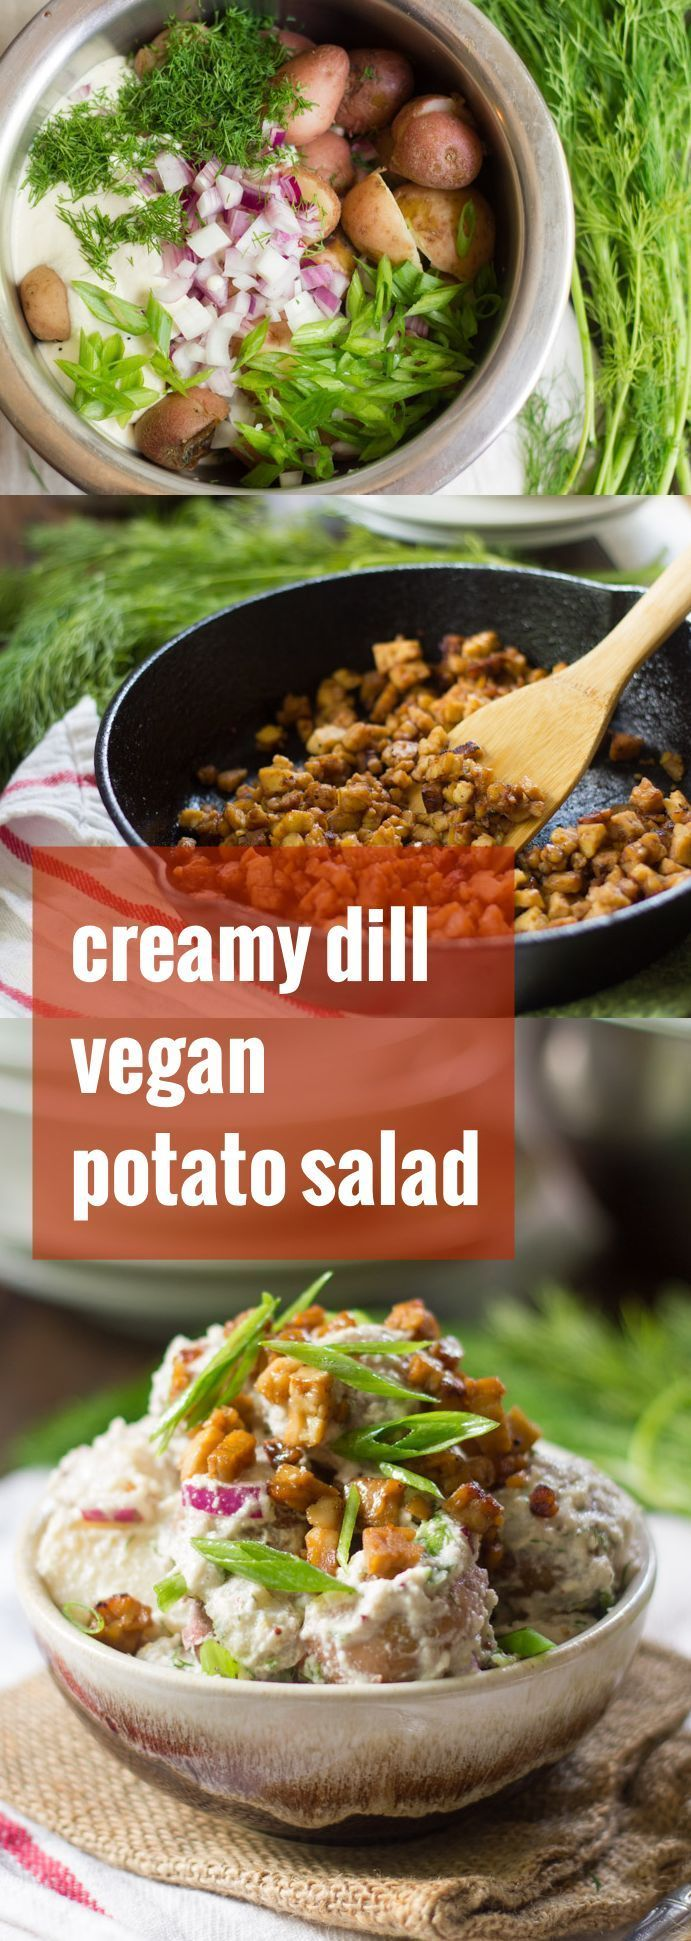 Creamy Fingerling Potato Salad (Vegan) Recipe — Dishmaps